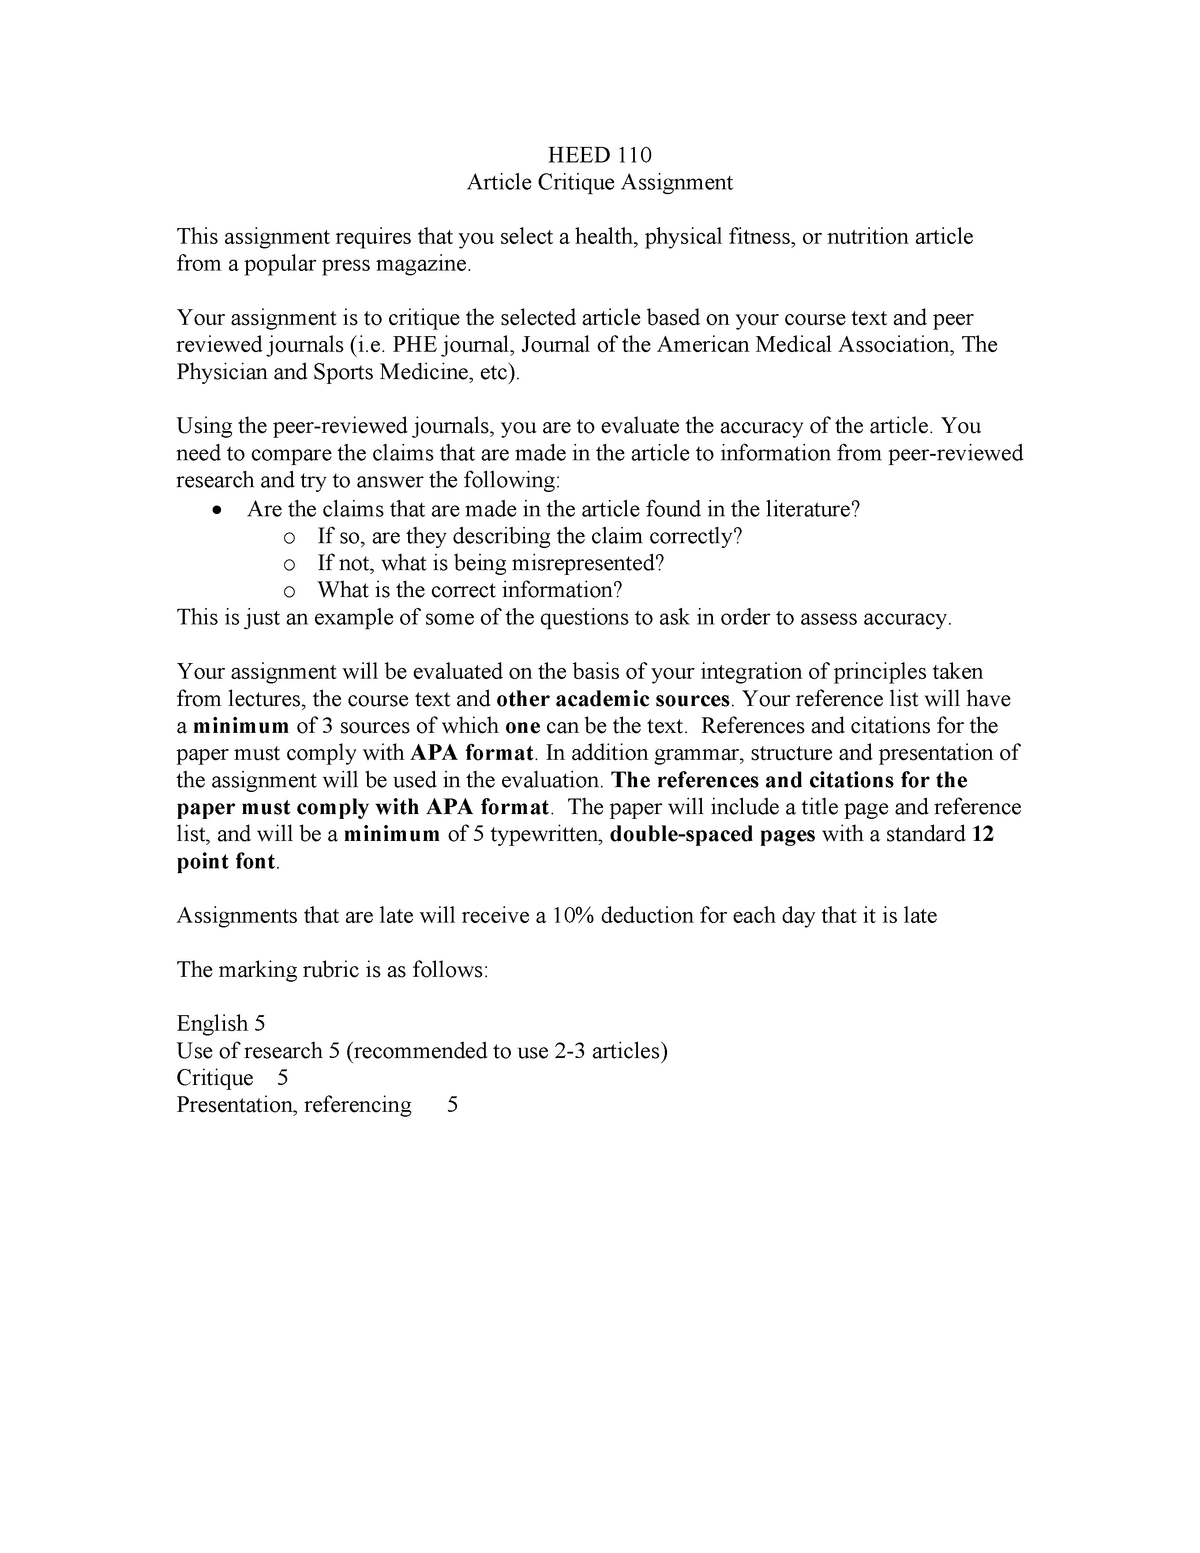 HEED 110 - Article Critique Assignment - He Ed110: Introduction to